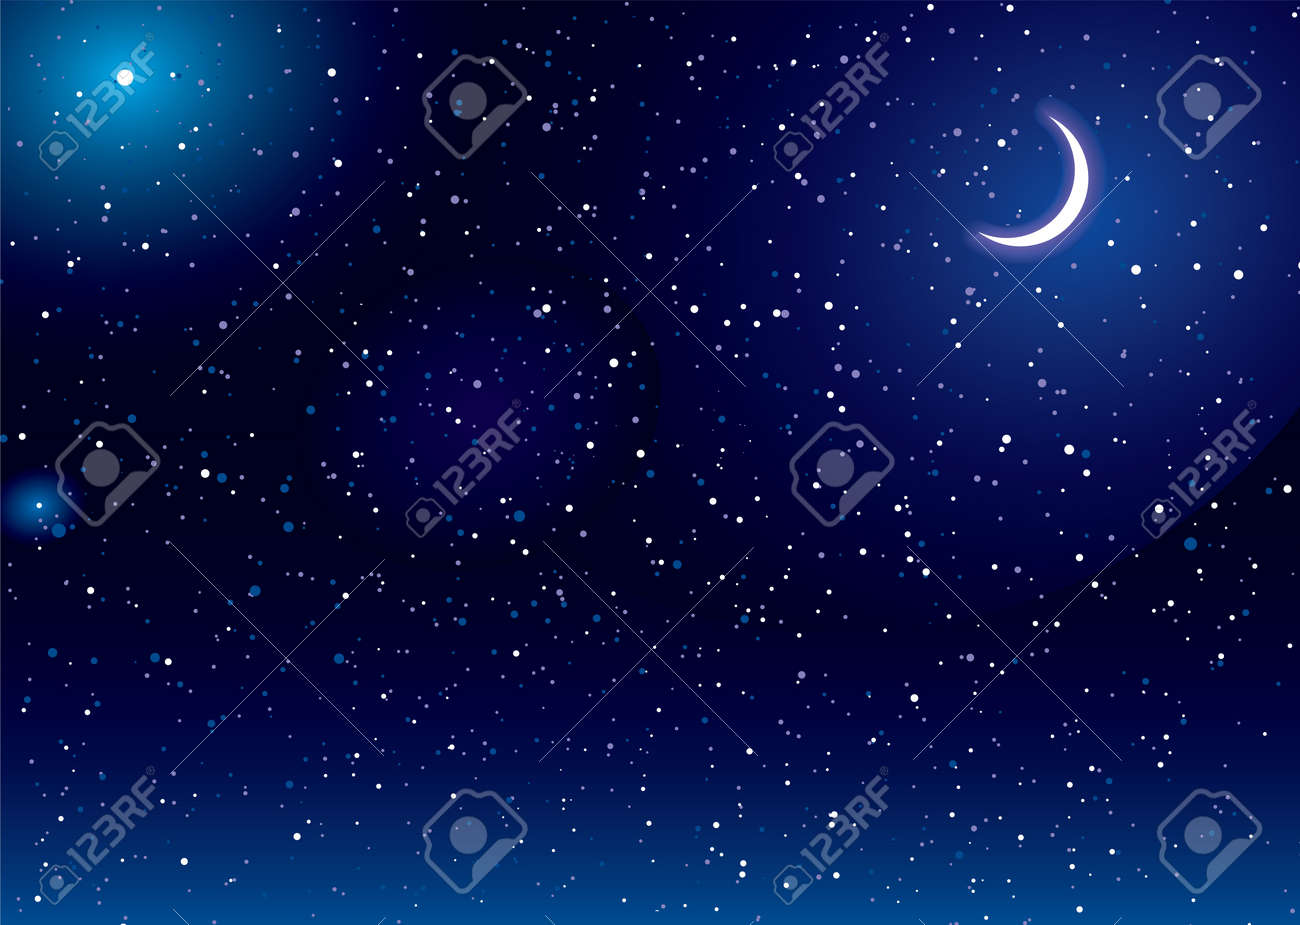 space scene with stars and moon ideal desktop background stock photo